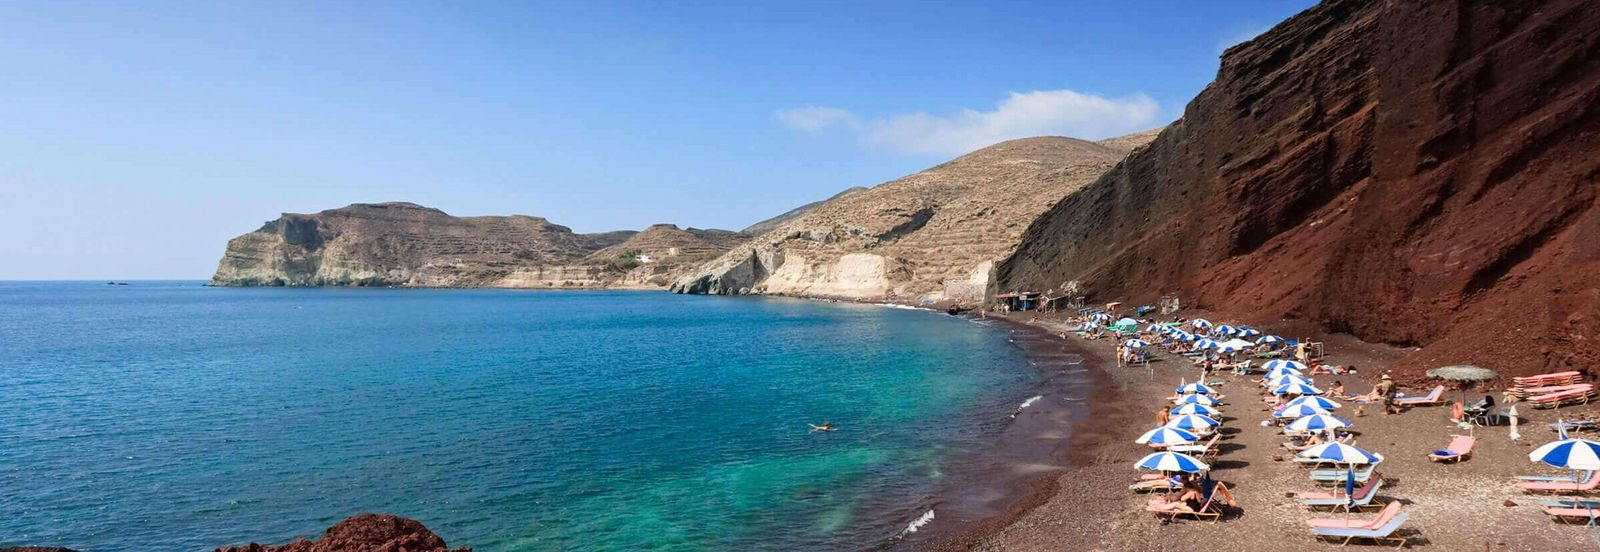 Santorini Griechenland Roter Strand